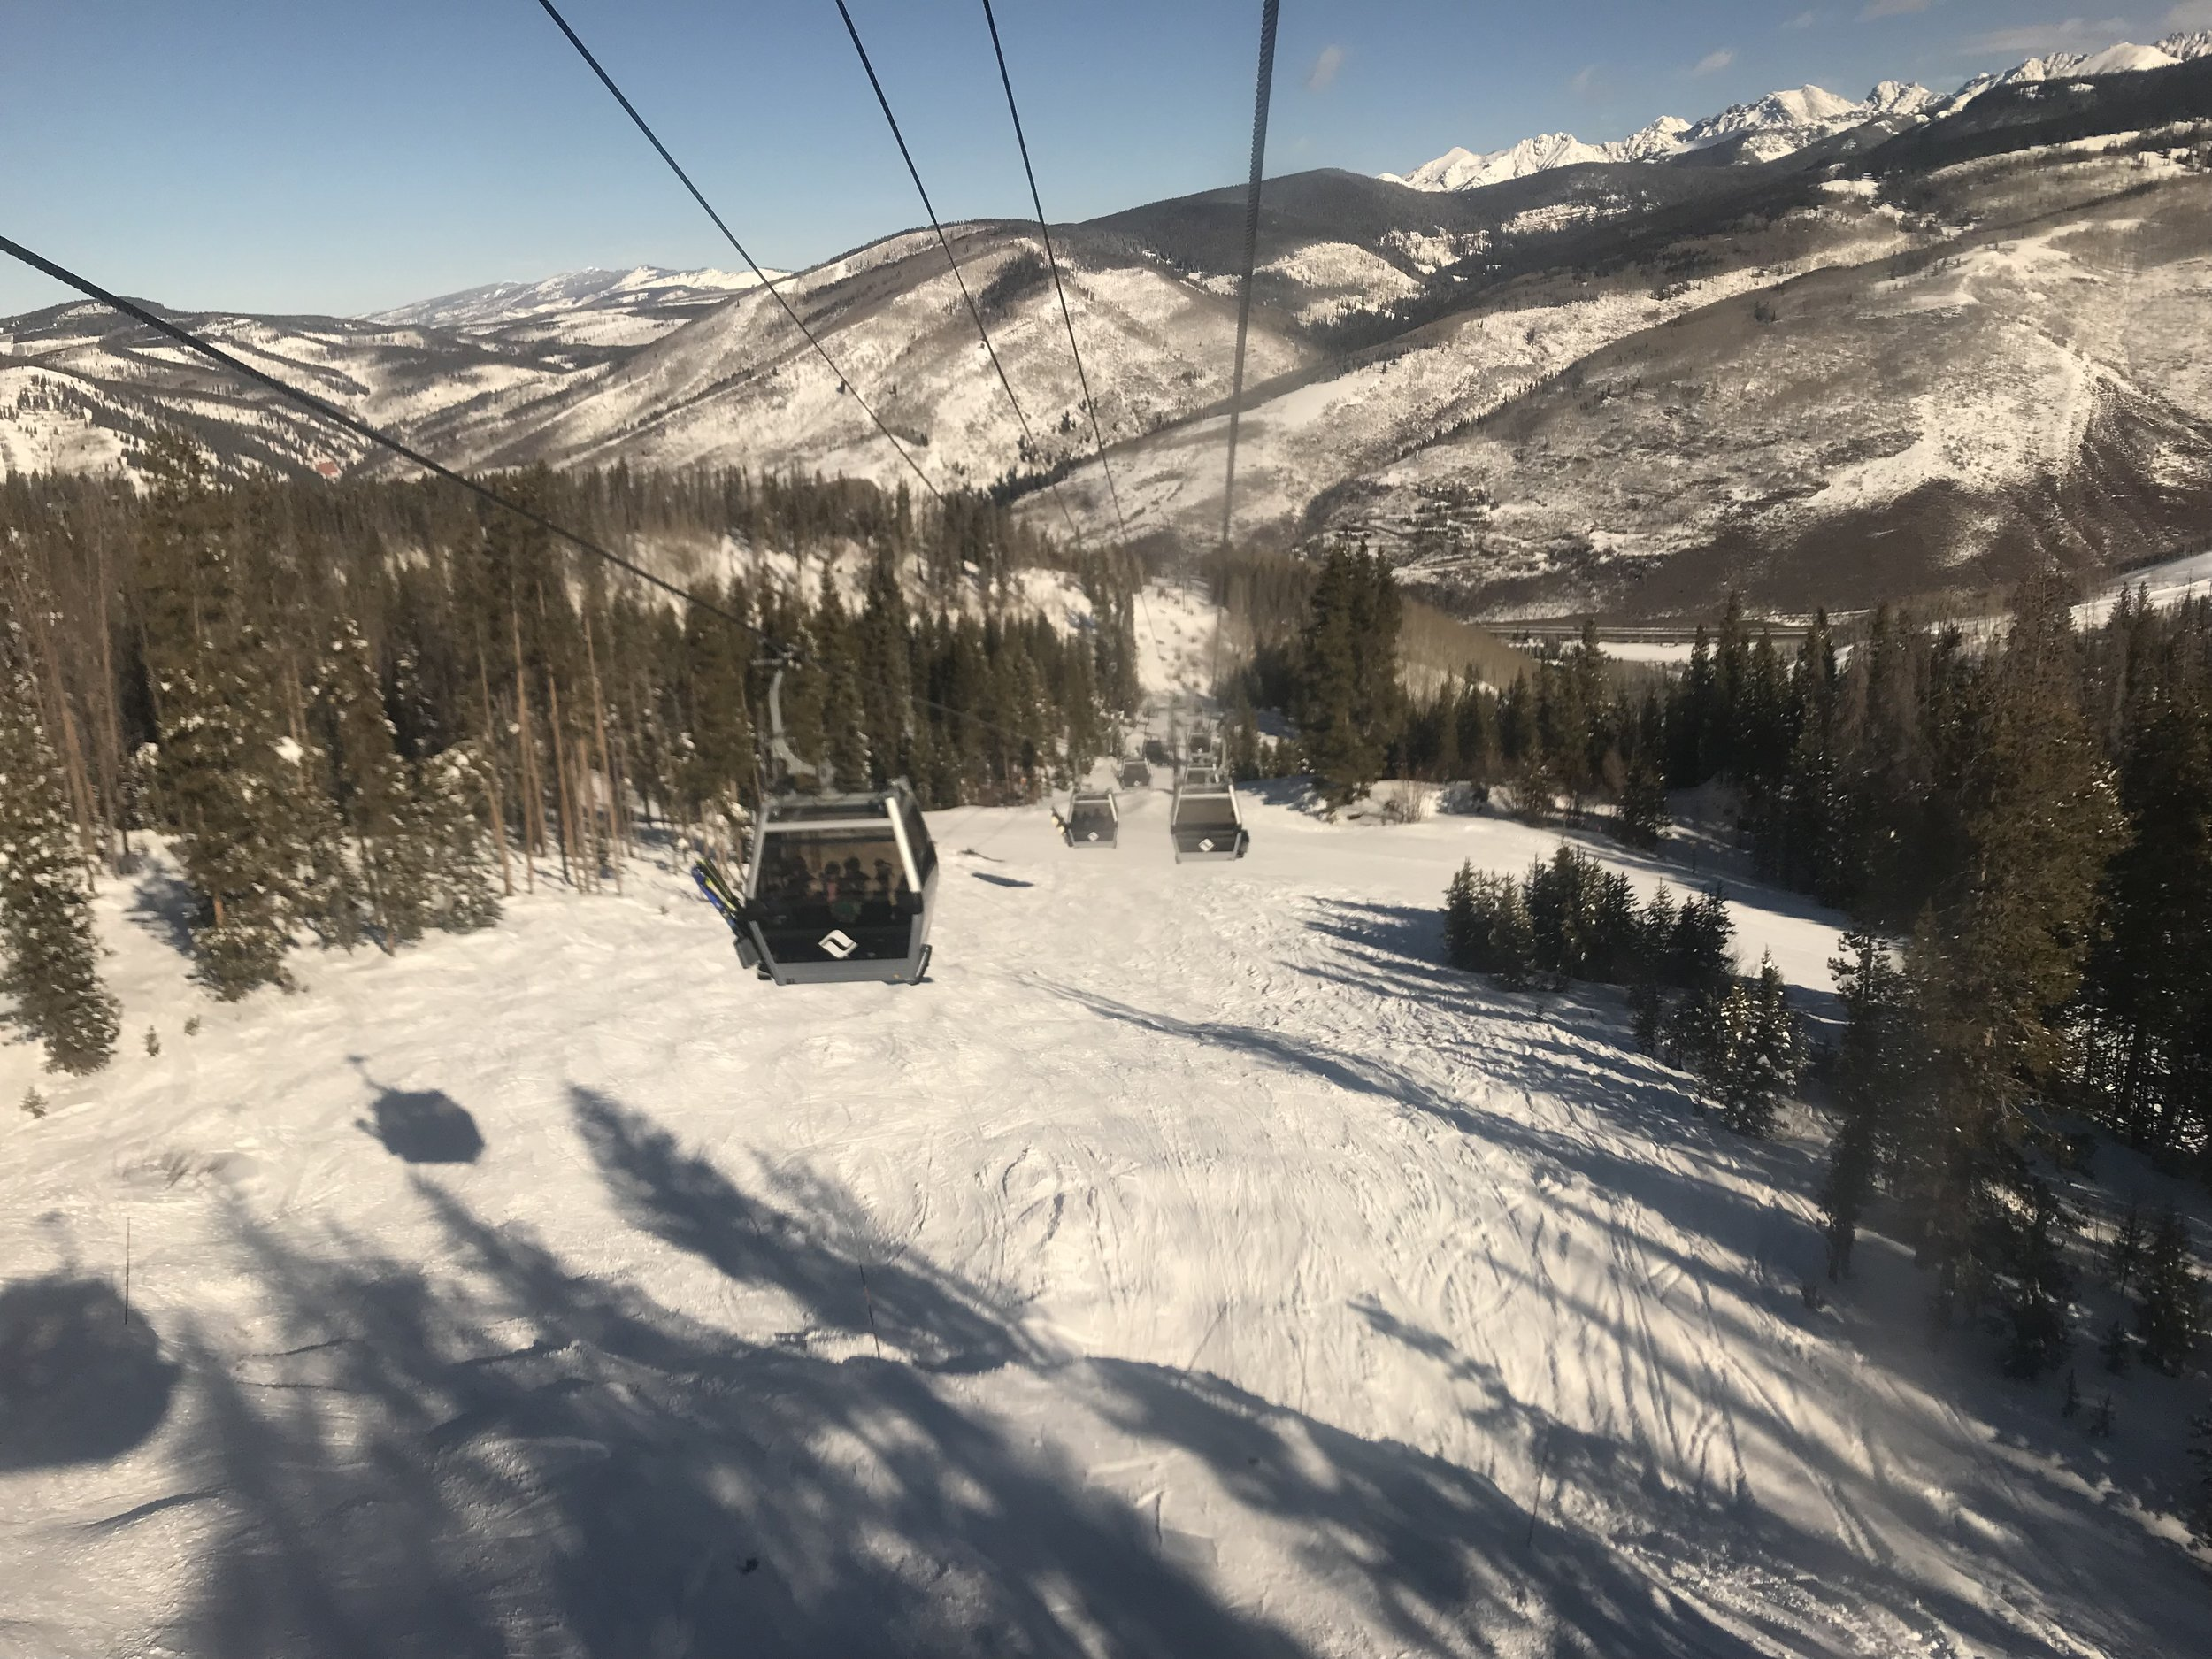 Colorado weekend getaway - Highlights from our Colorado trip; Denver, Vail, and Ft. Collins!